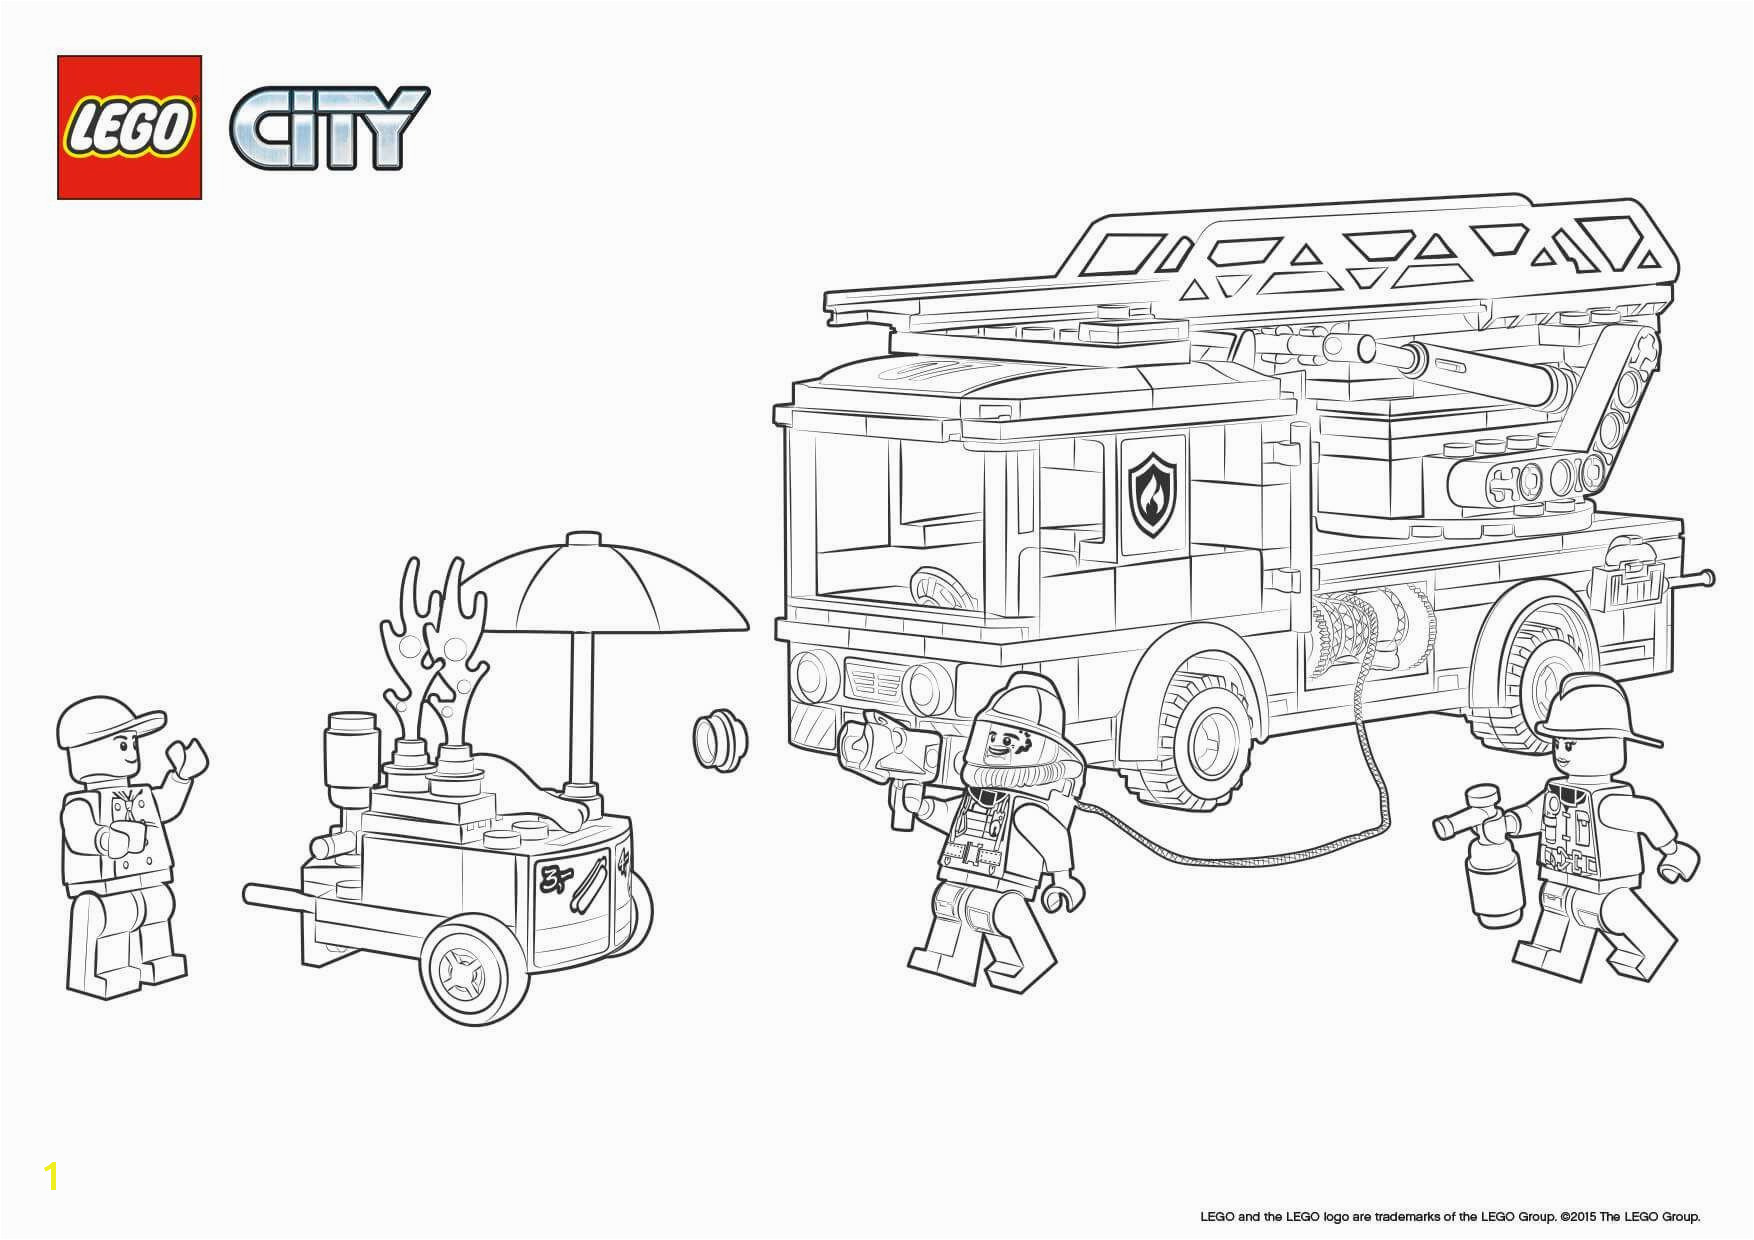 Lego City Coloring Pages Elegant Frisches Ausmalbilder Lego City Einzigartig Ausmalbilder Lego City Polizei